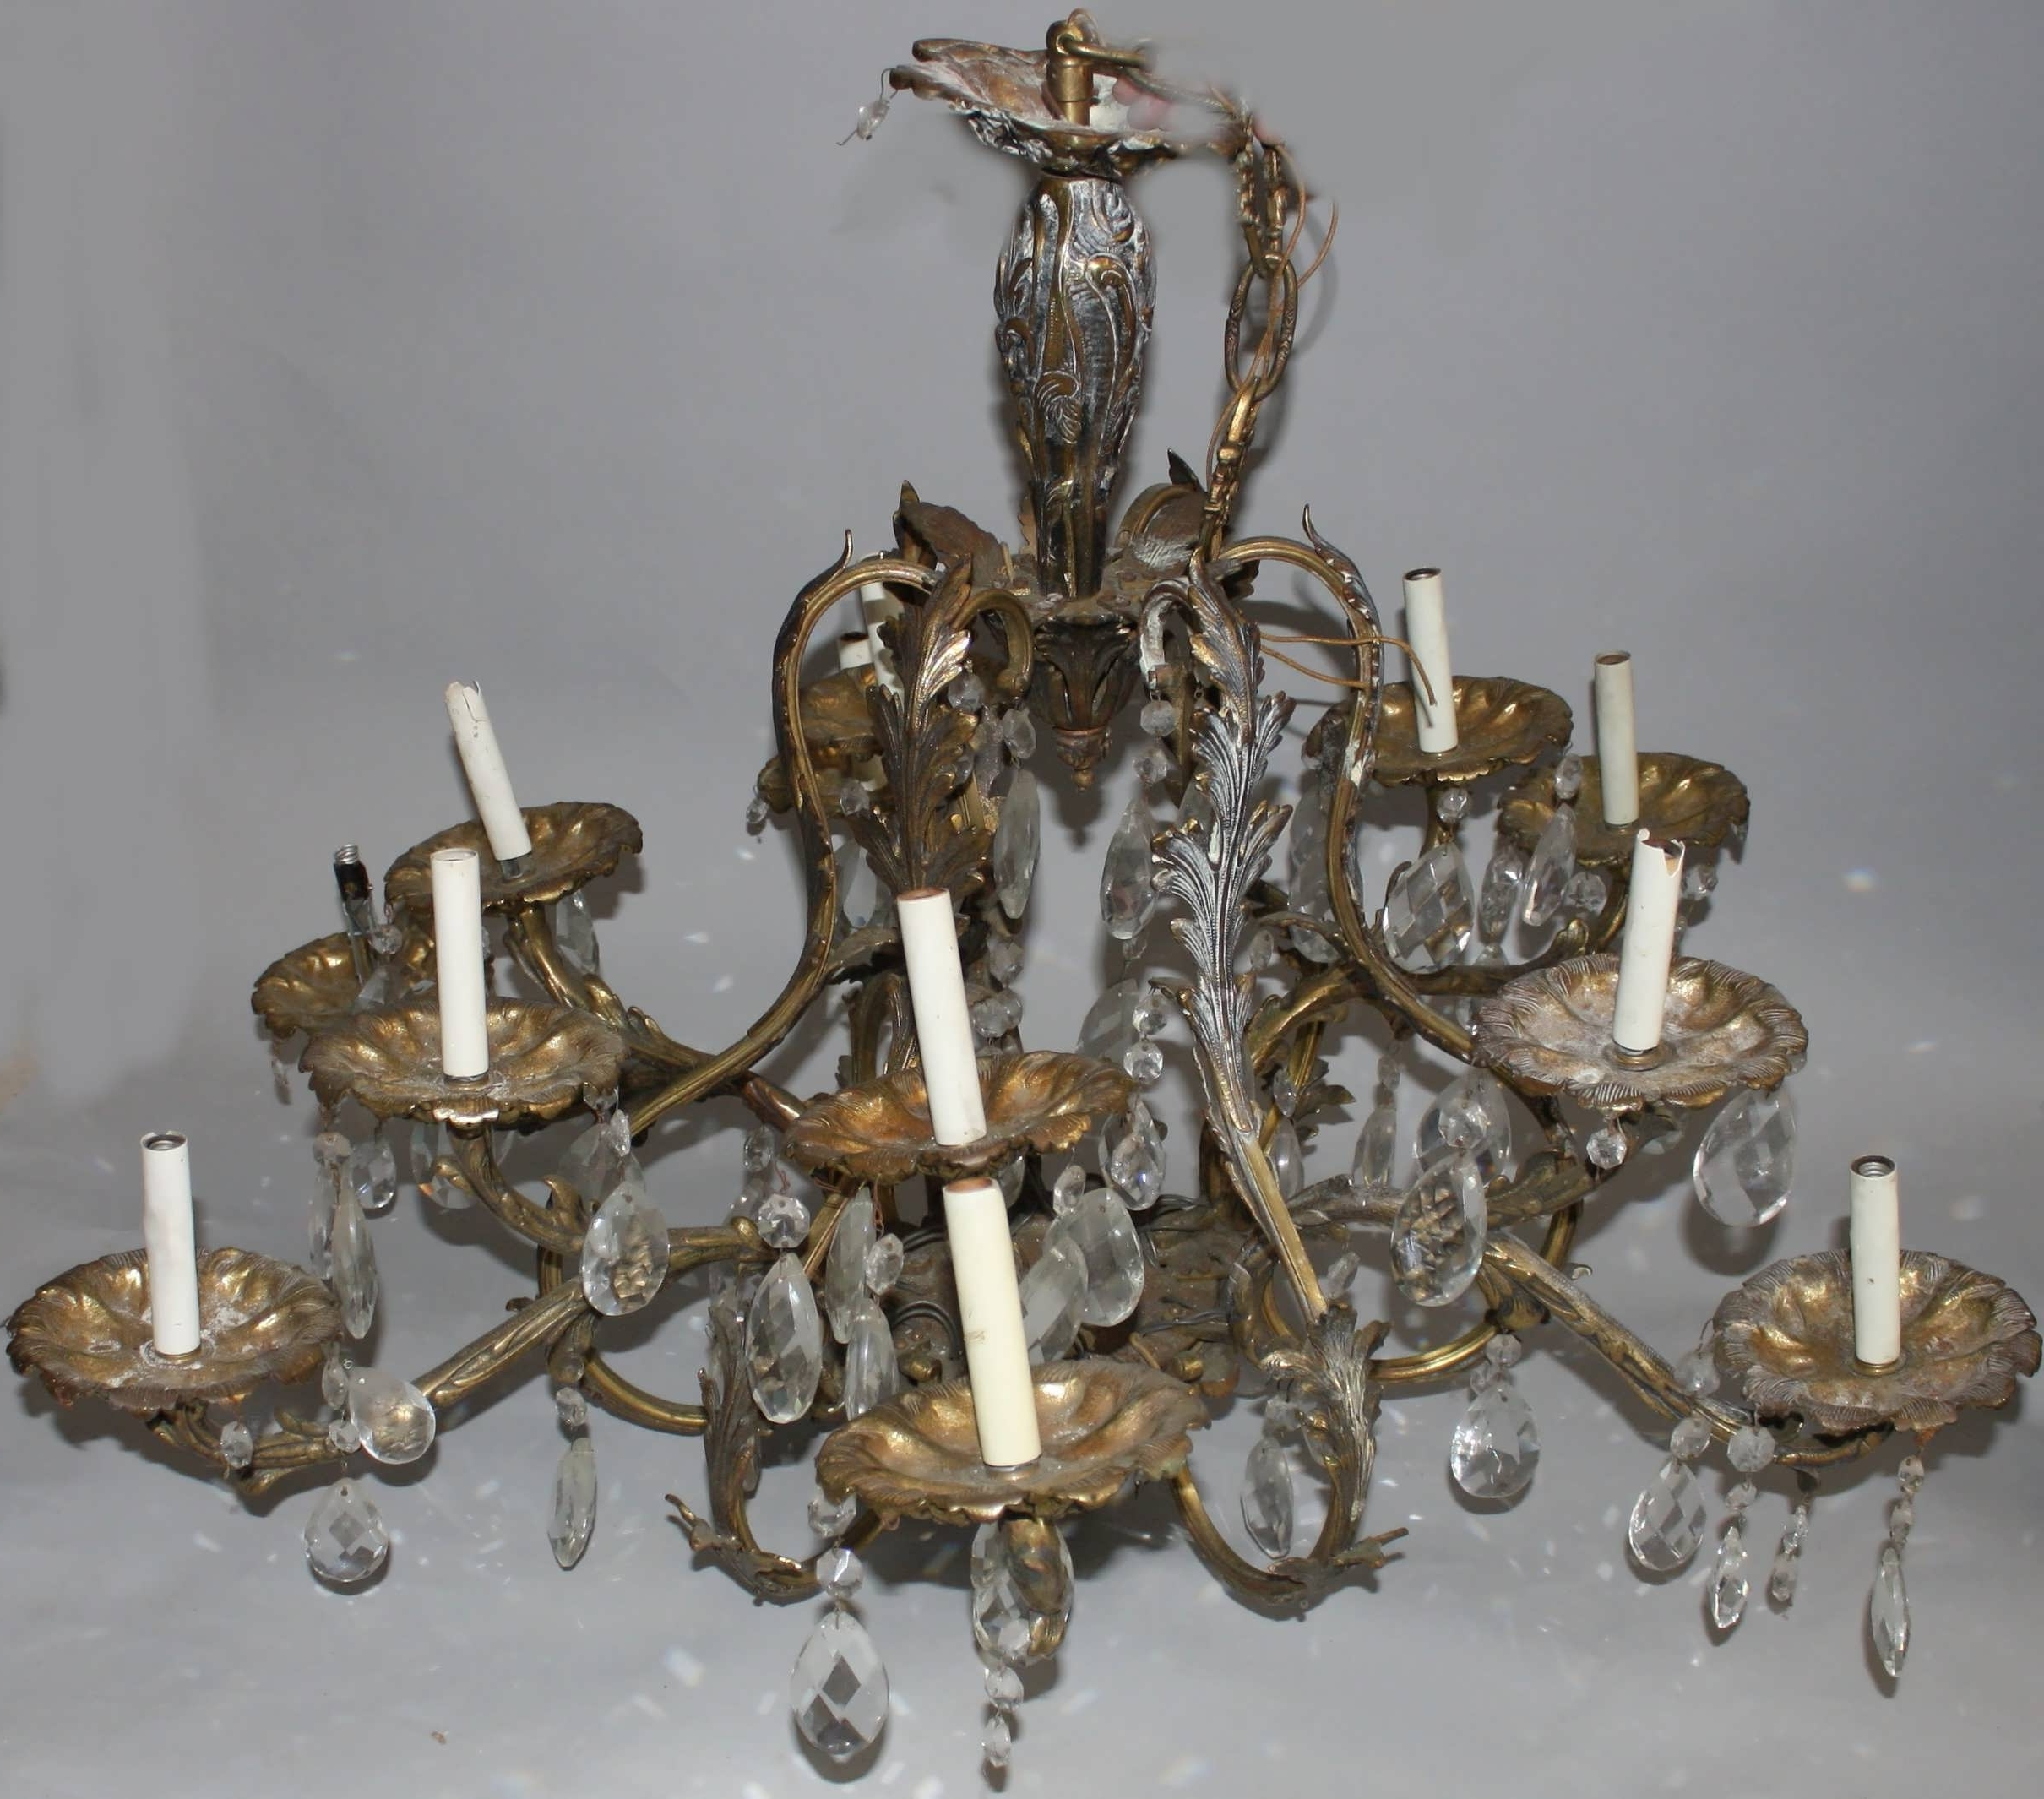 Vintage Brass Chandeliers Inside Latest Chandeliers Design : Fabulous Vintage Brass Chandelier Plug In (Gallery 6 of 20)